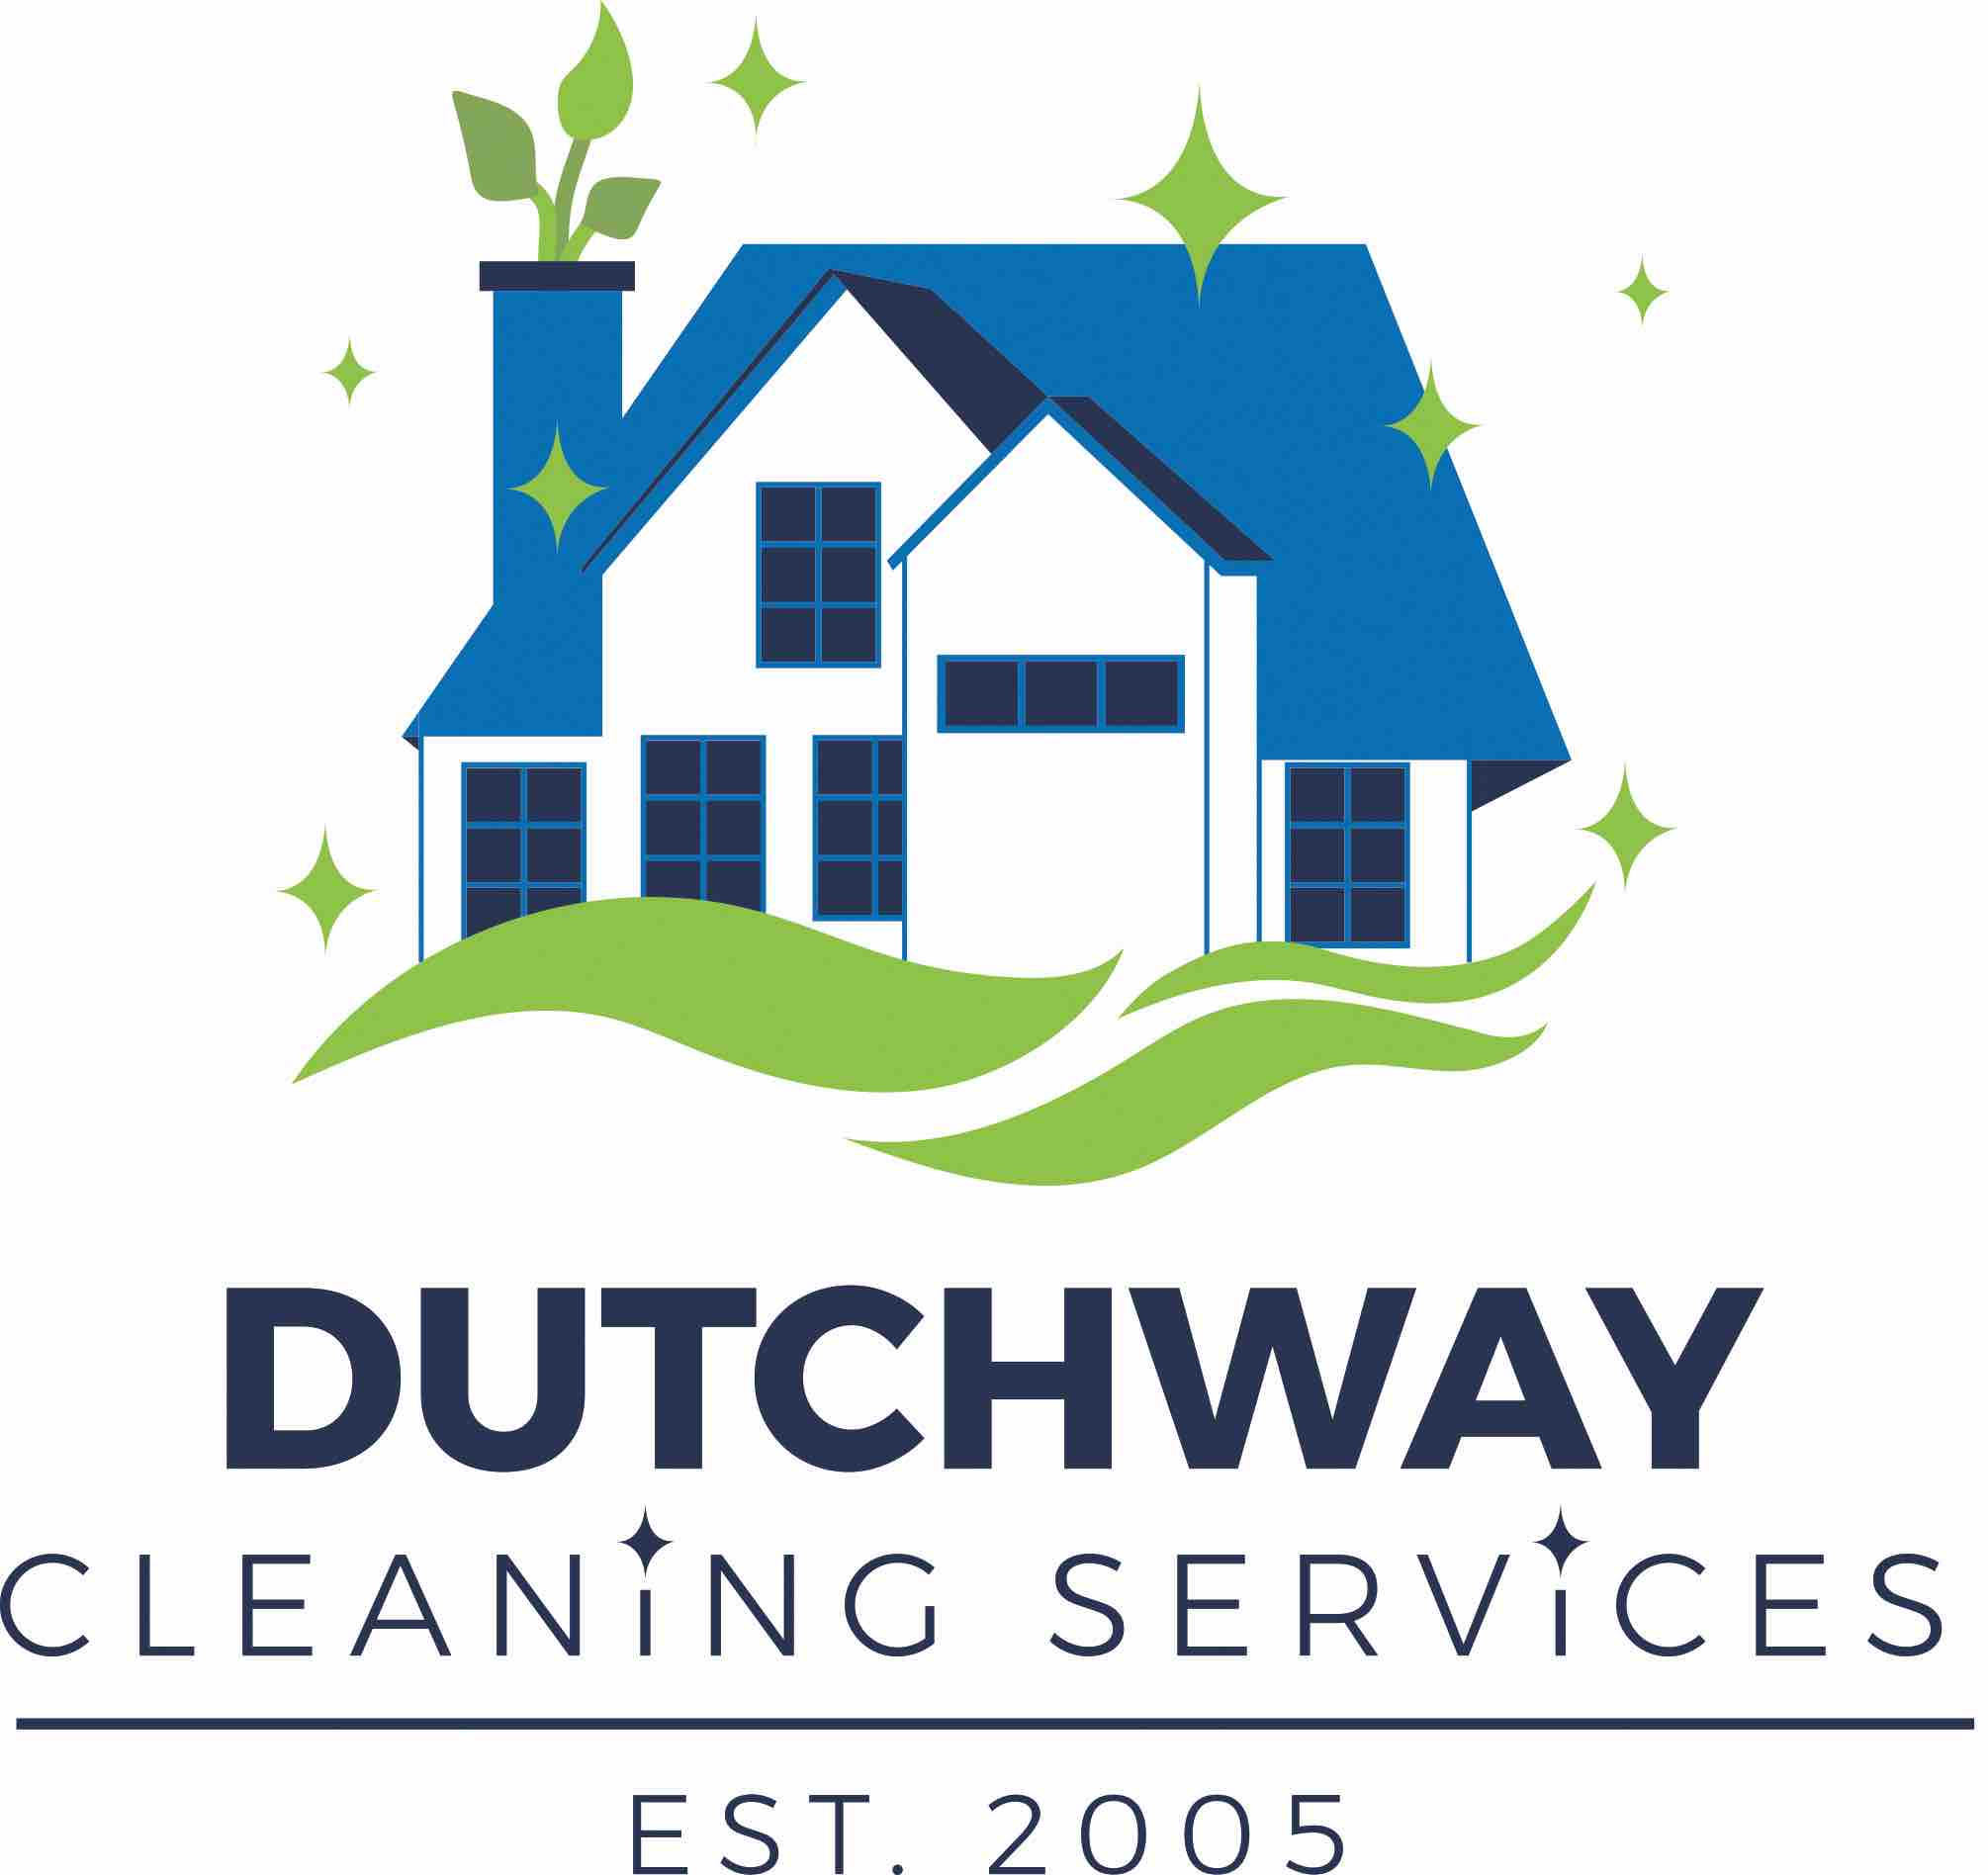 Dutch Way Cleaning Services in Brantford, Ontario